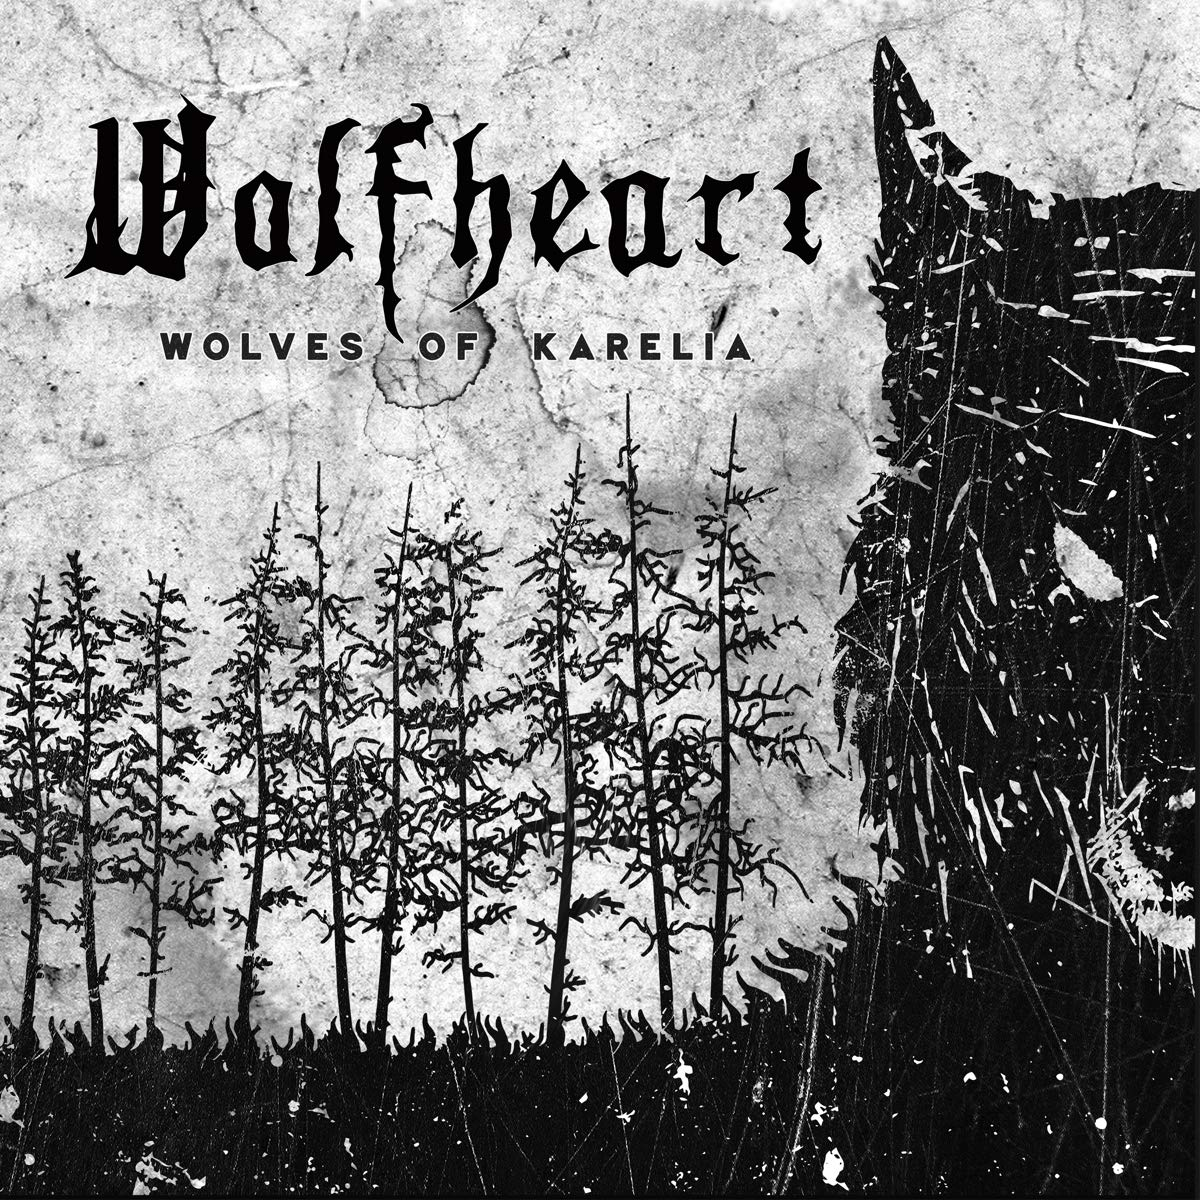 Wolfheart - Wolves of Karelia (2020) [FLAC] Download